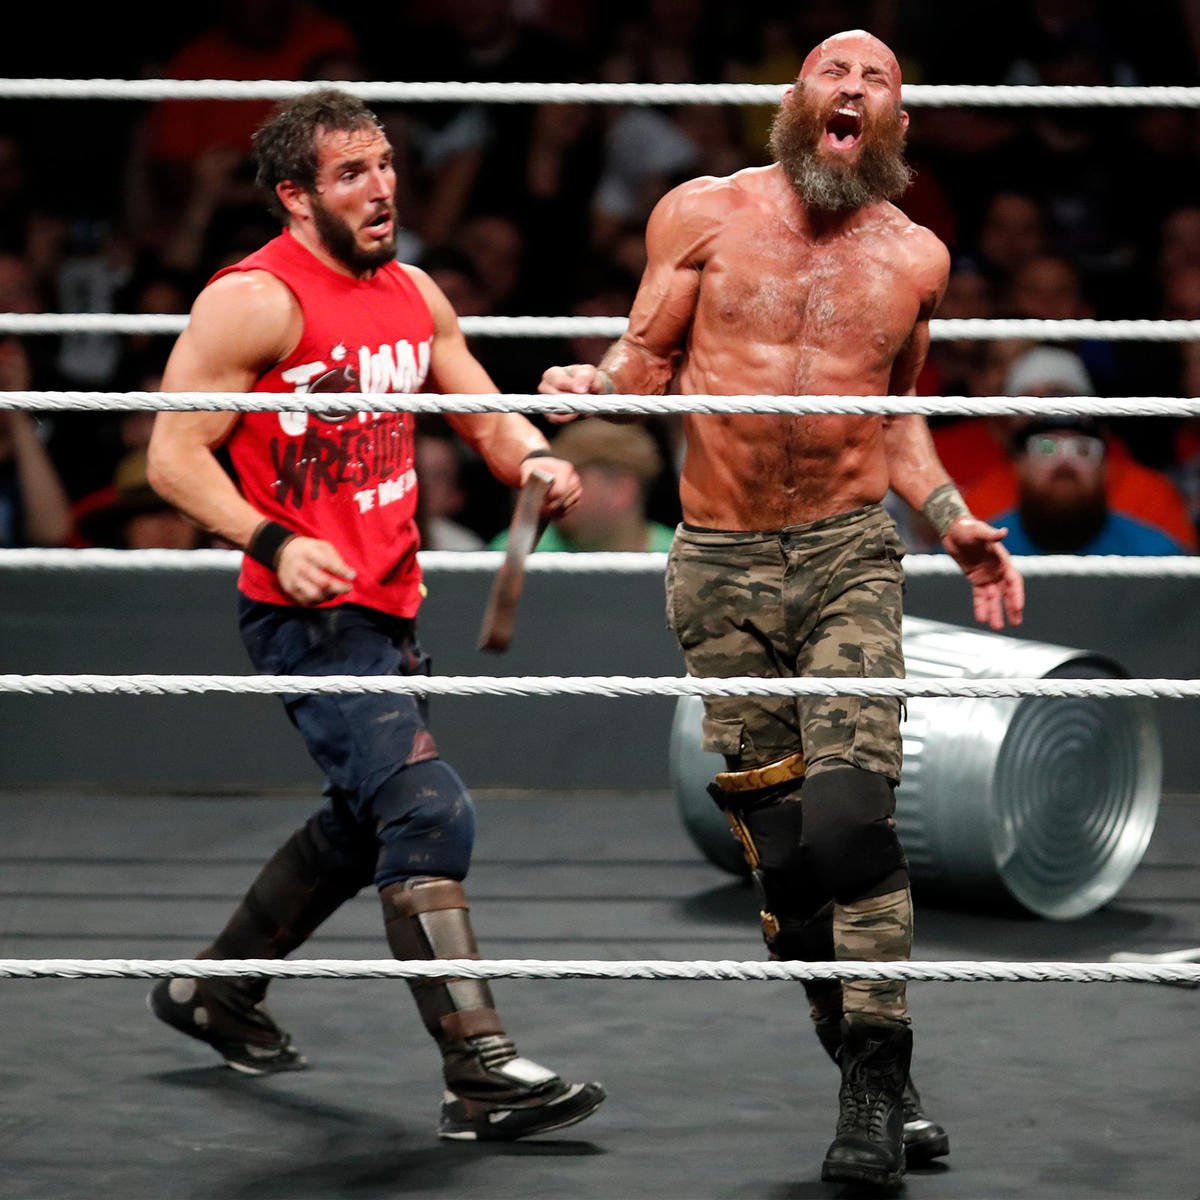 Gargano whips Ciampa with his belt.